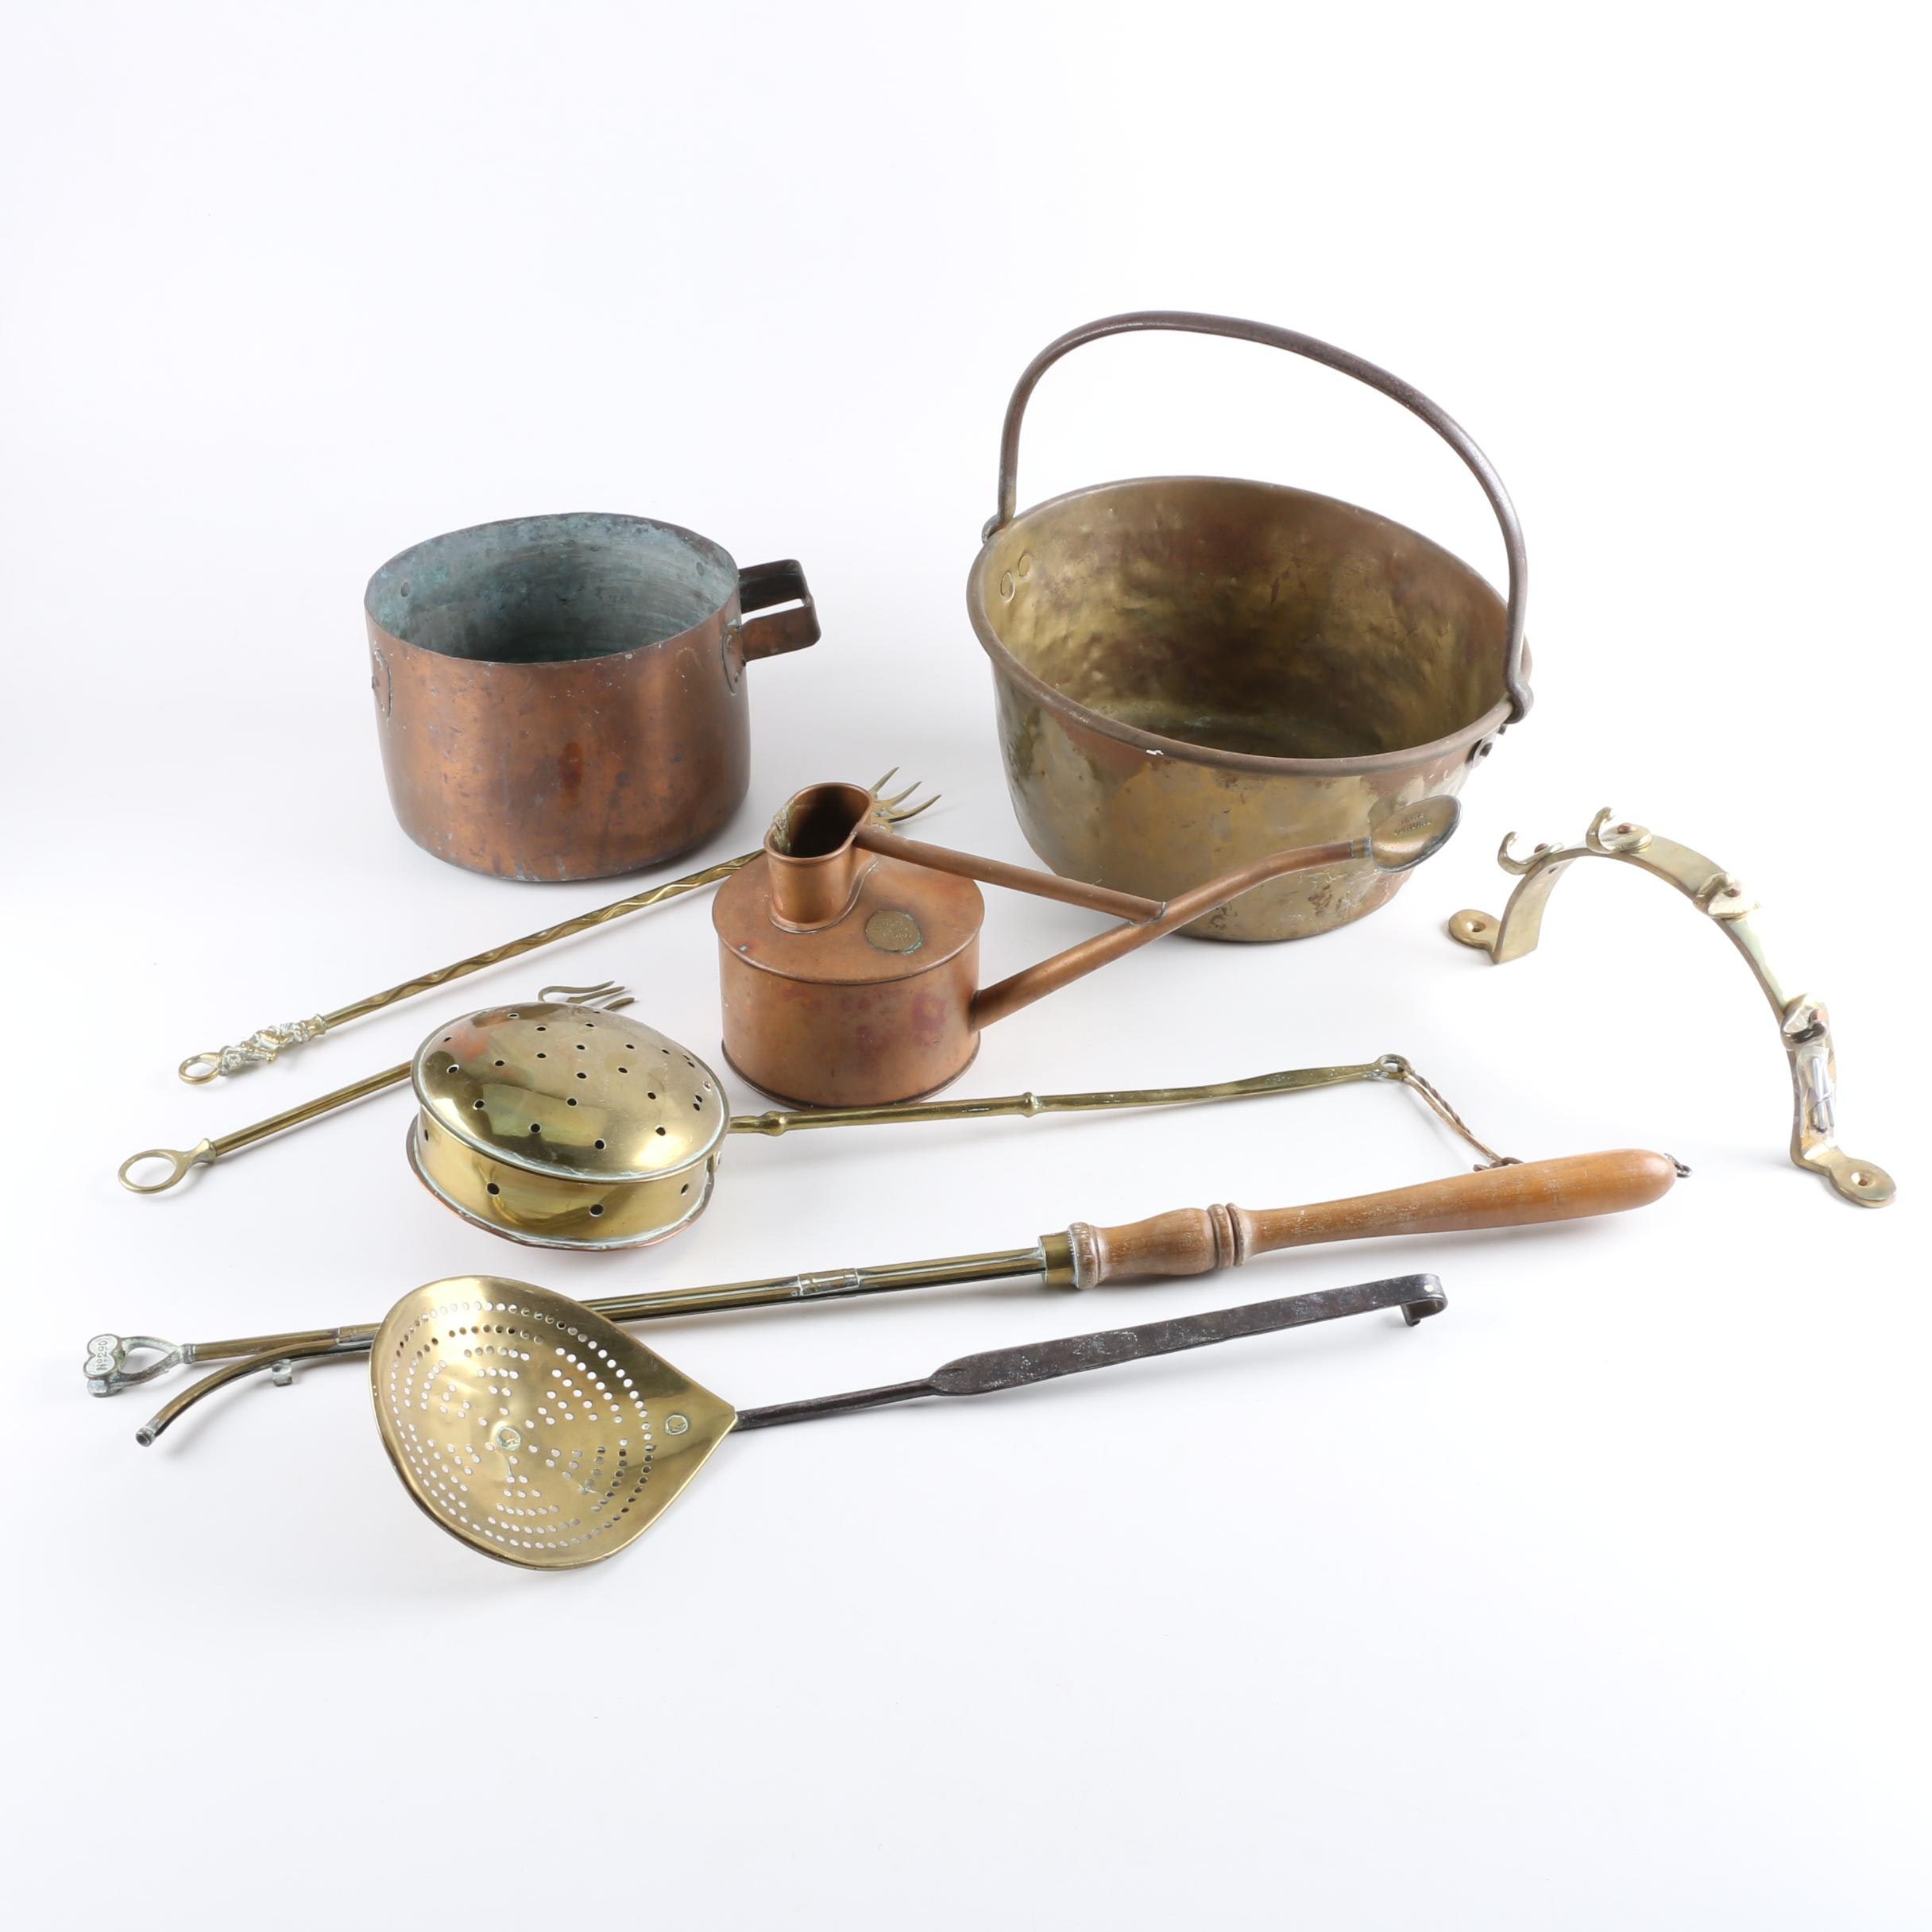 Brass and Copper Kitchenalia and Other Home Decor